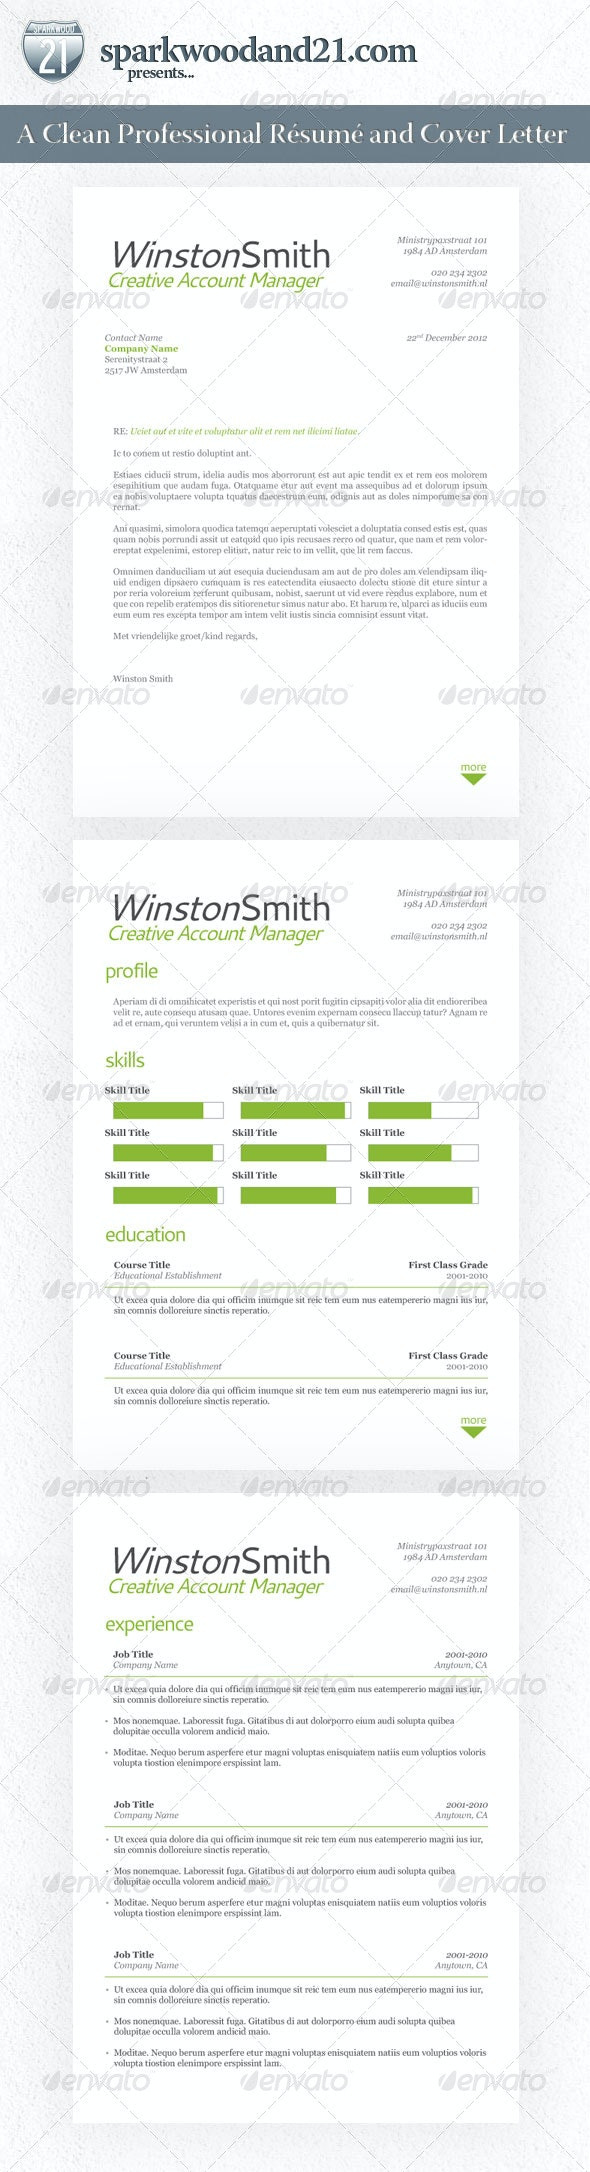 Clean Professional Resume and Cover Letter - Resumes Stationery